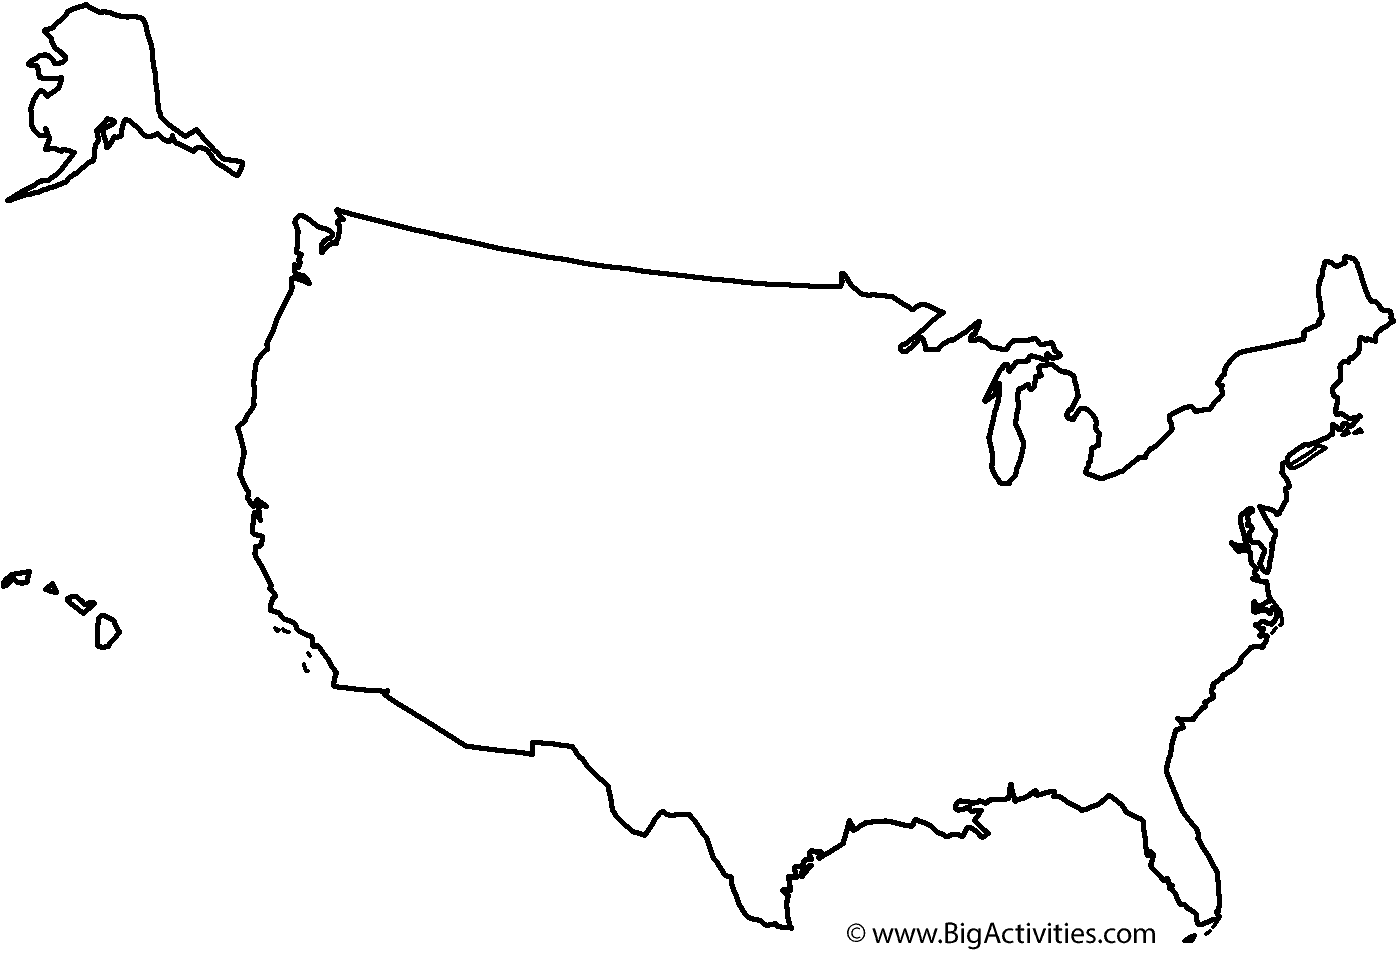 PNG Usa Outline Transparent Usa Outline.PNG Images..